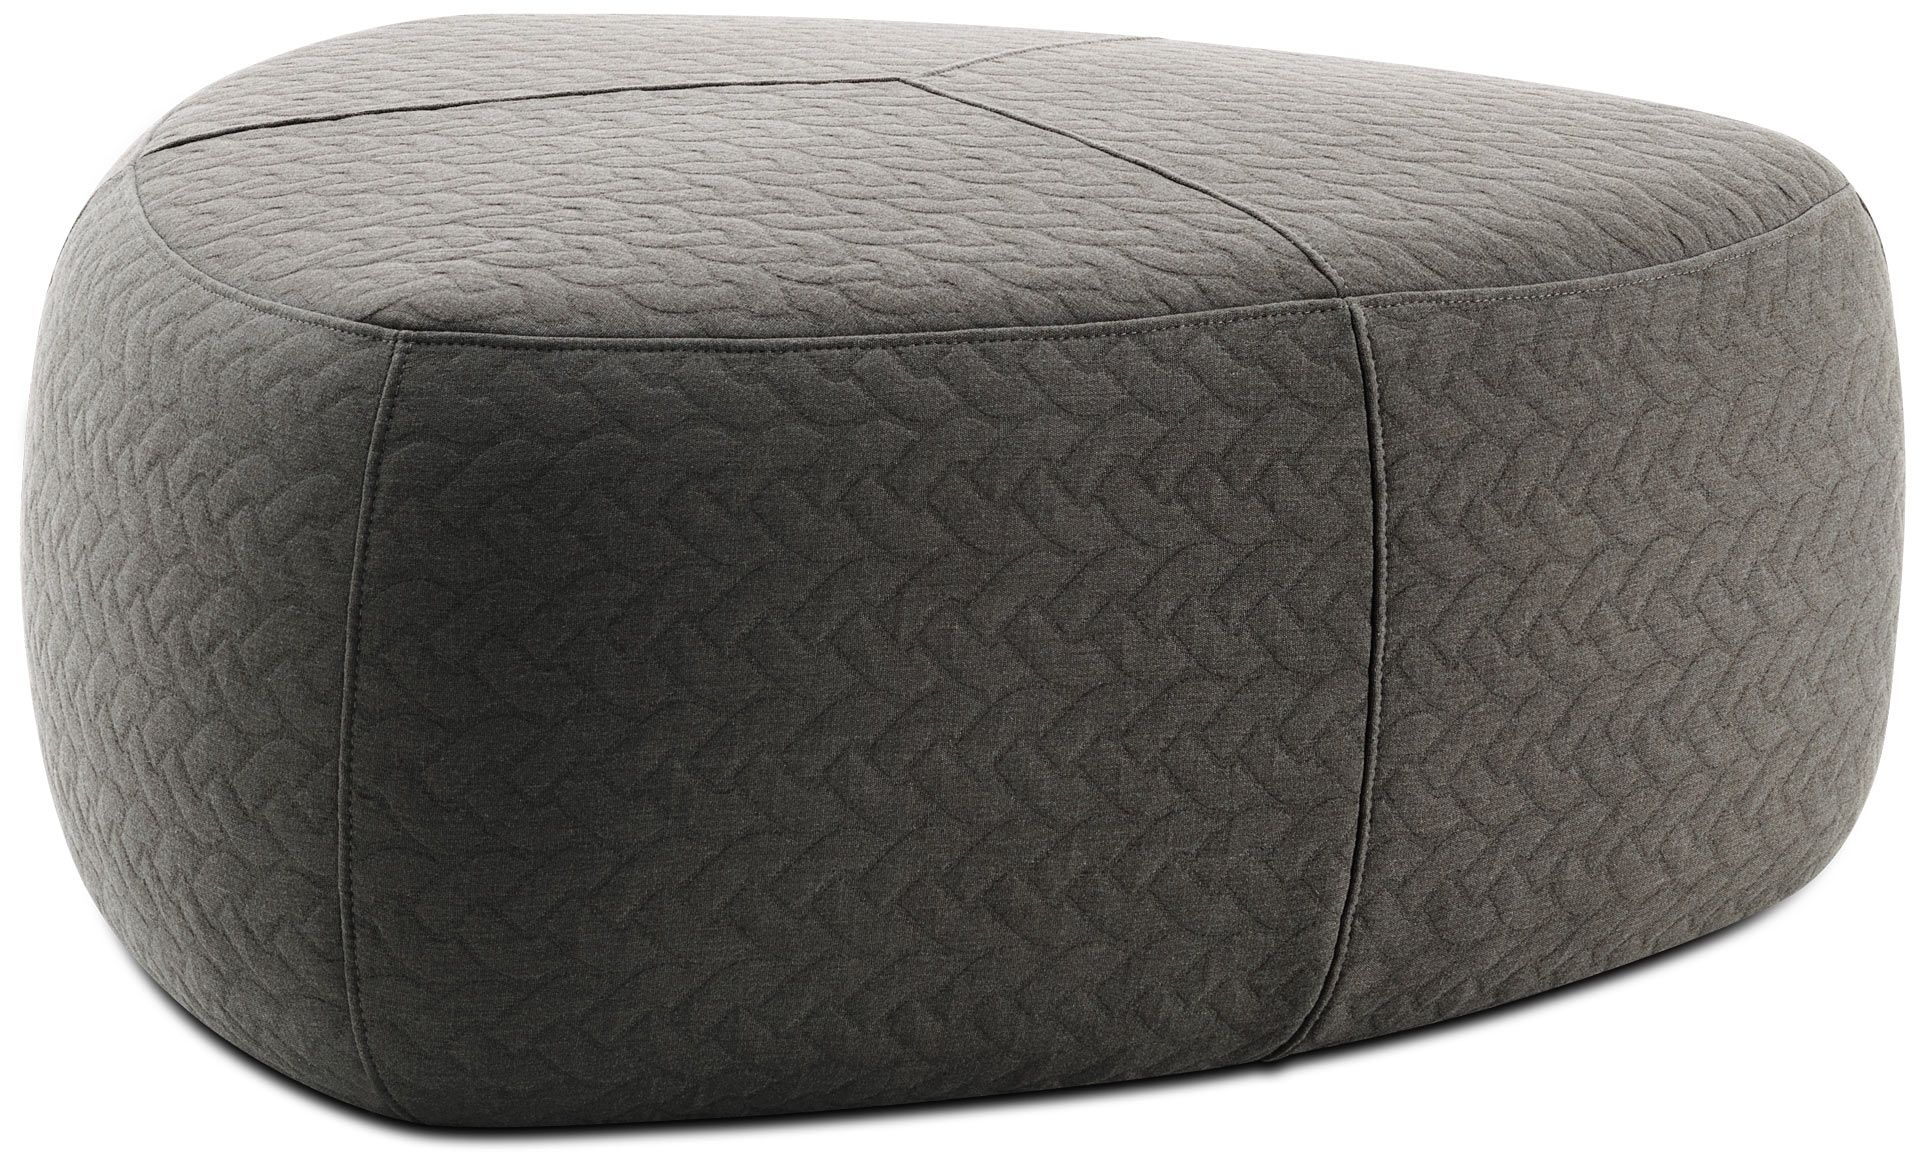 Boconcept Ottoman Available In Fabrics And Leathers As Shown Gray Moss Fabric H16 Xw38xd38 Modern Footstool Modern Ottoman Footstool